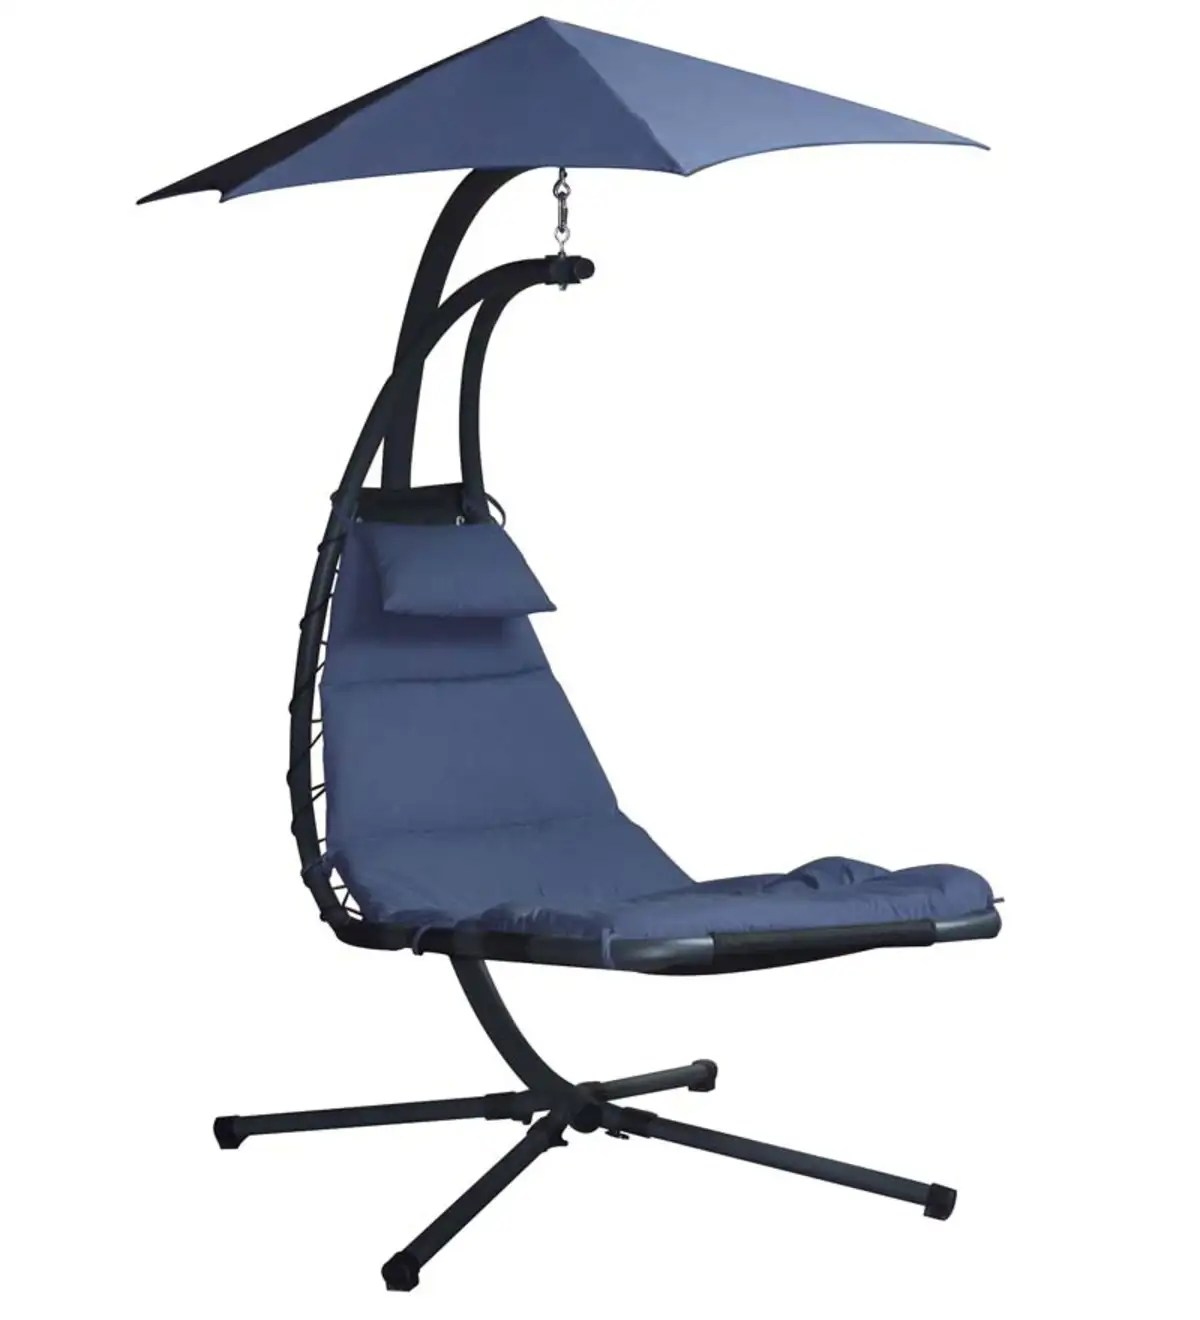 Chair With Umbrella Dream Chair Suspended Lounge Chair With Umbrella Plowhearth